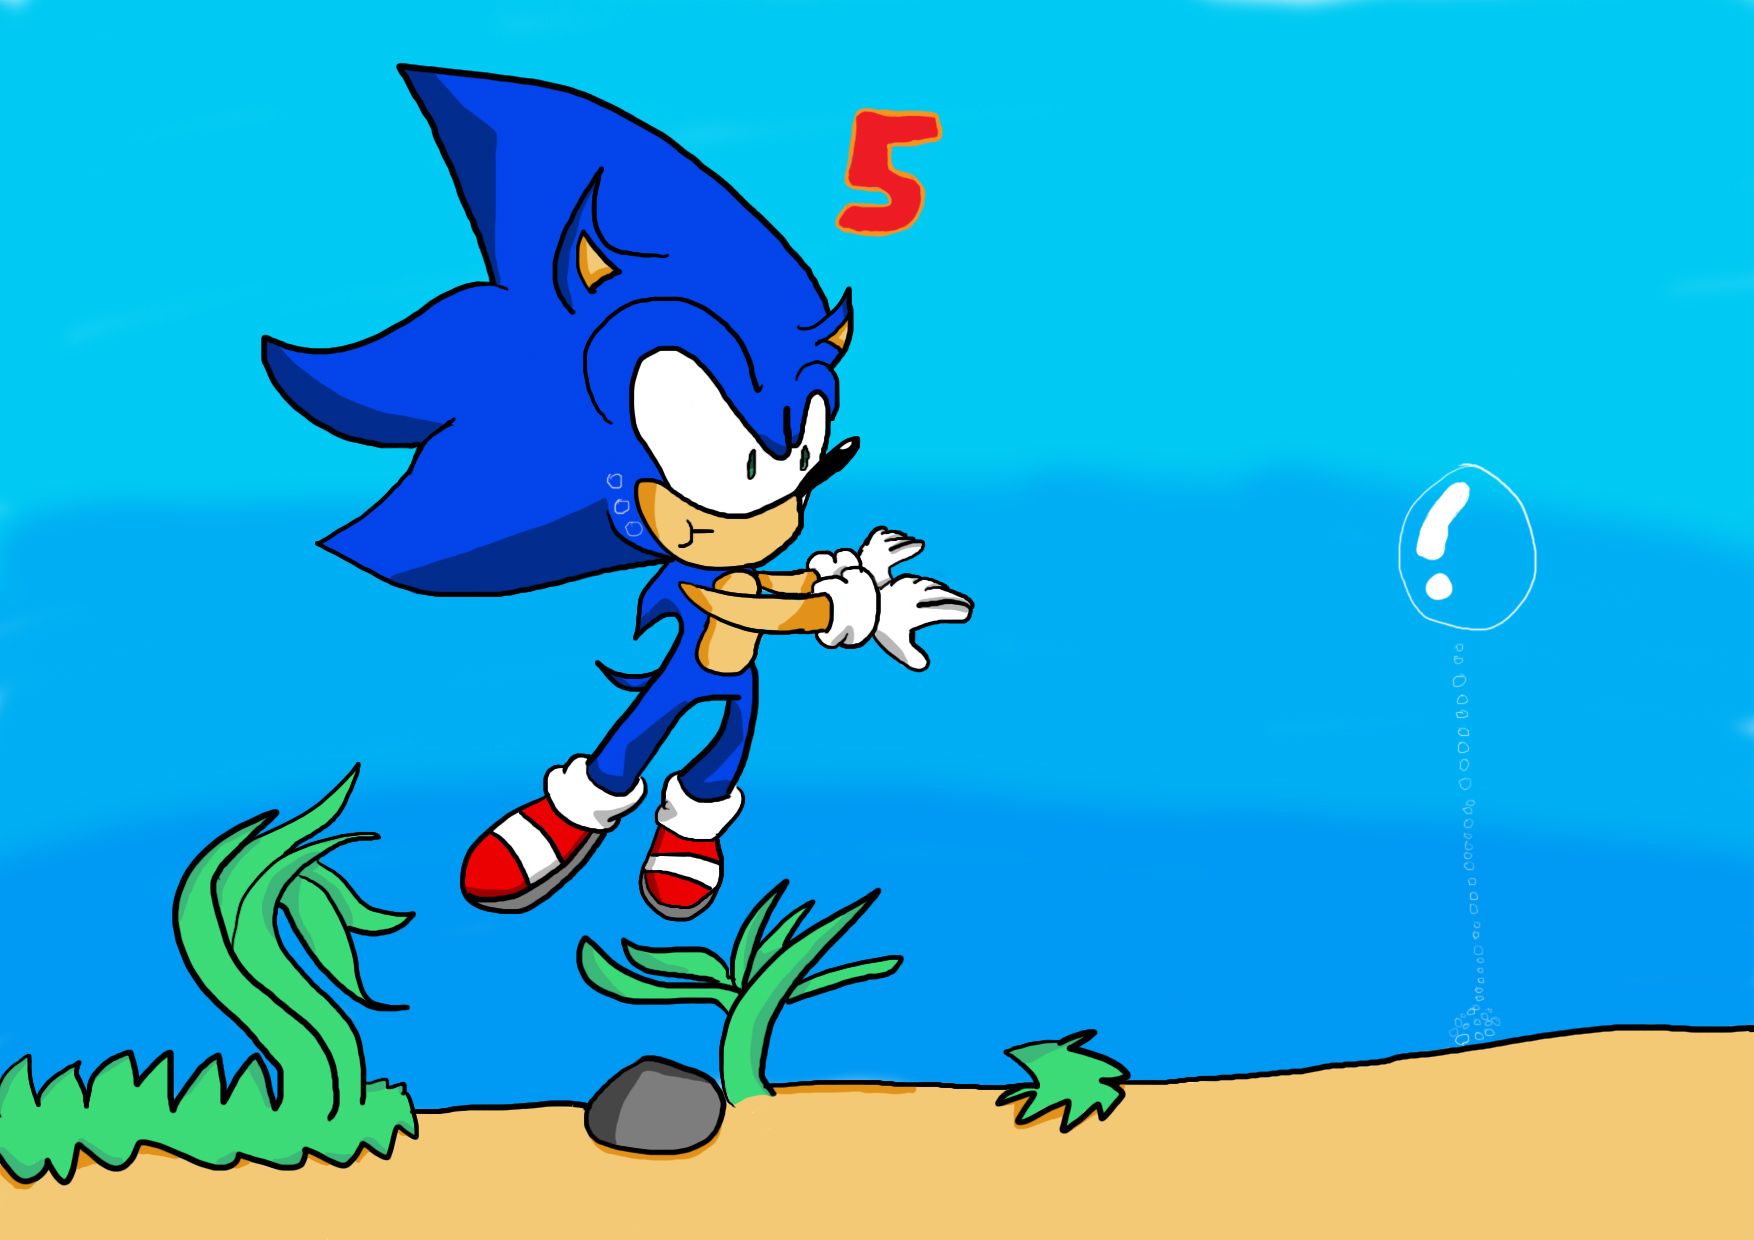 Sonic Underwater Sonic The Hedgehog Sega Fans Fan Art 31661970 Fanpop